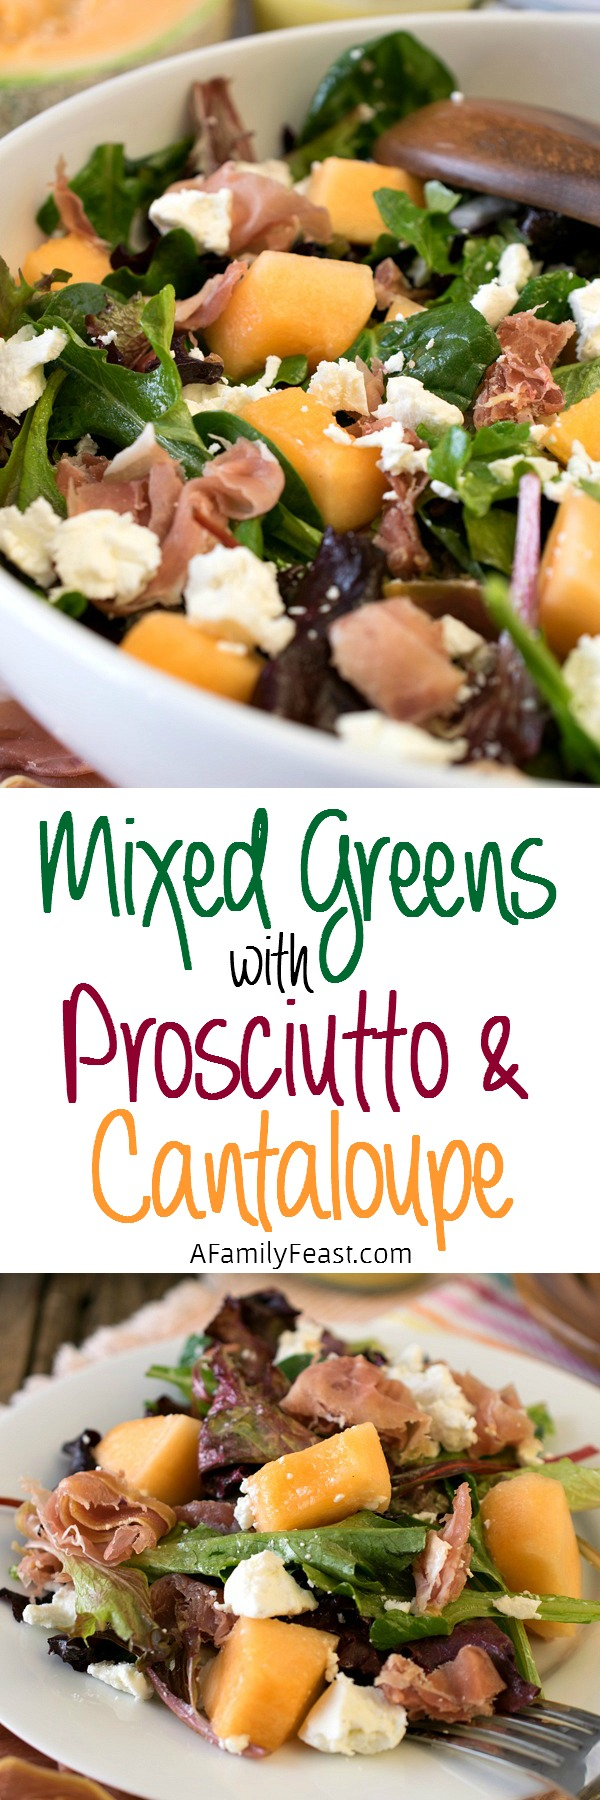 Mixed Greens with Prosciutto and Cantaloupe - A light salad with fantastic flavors!